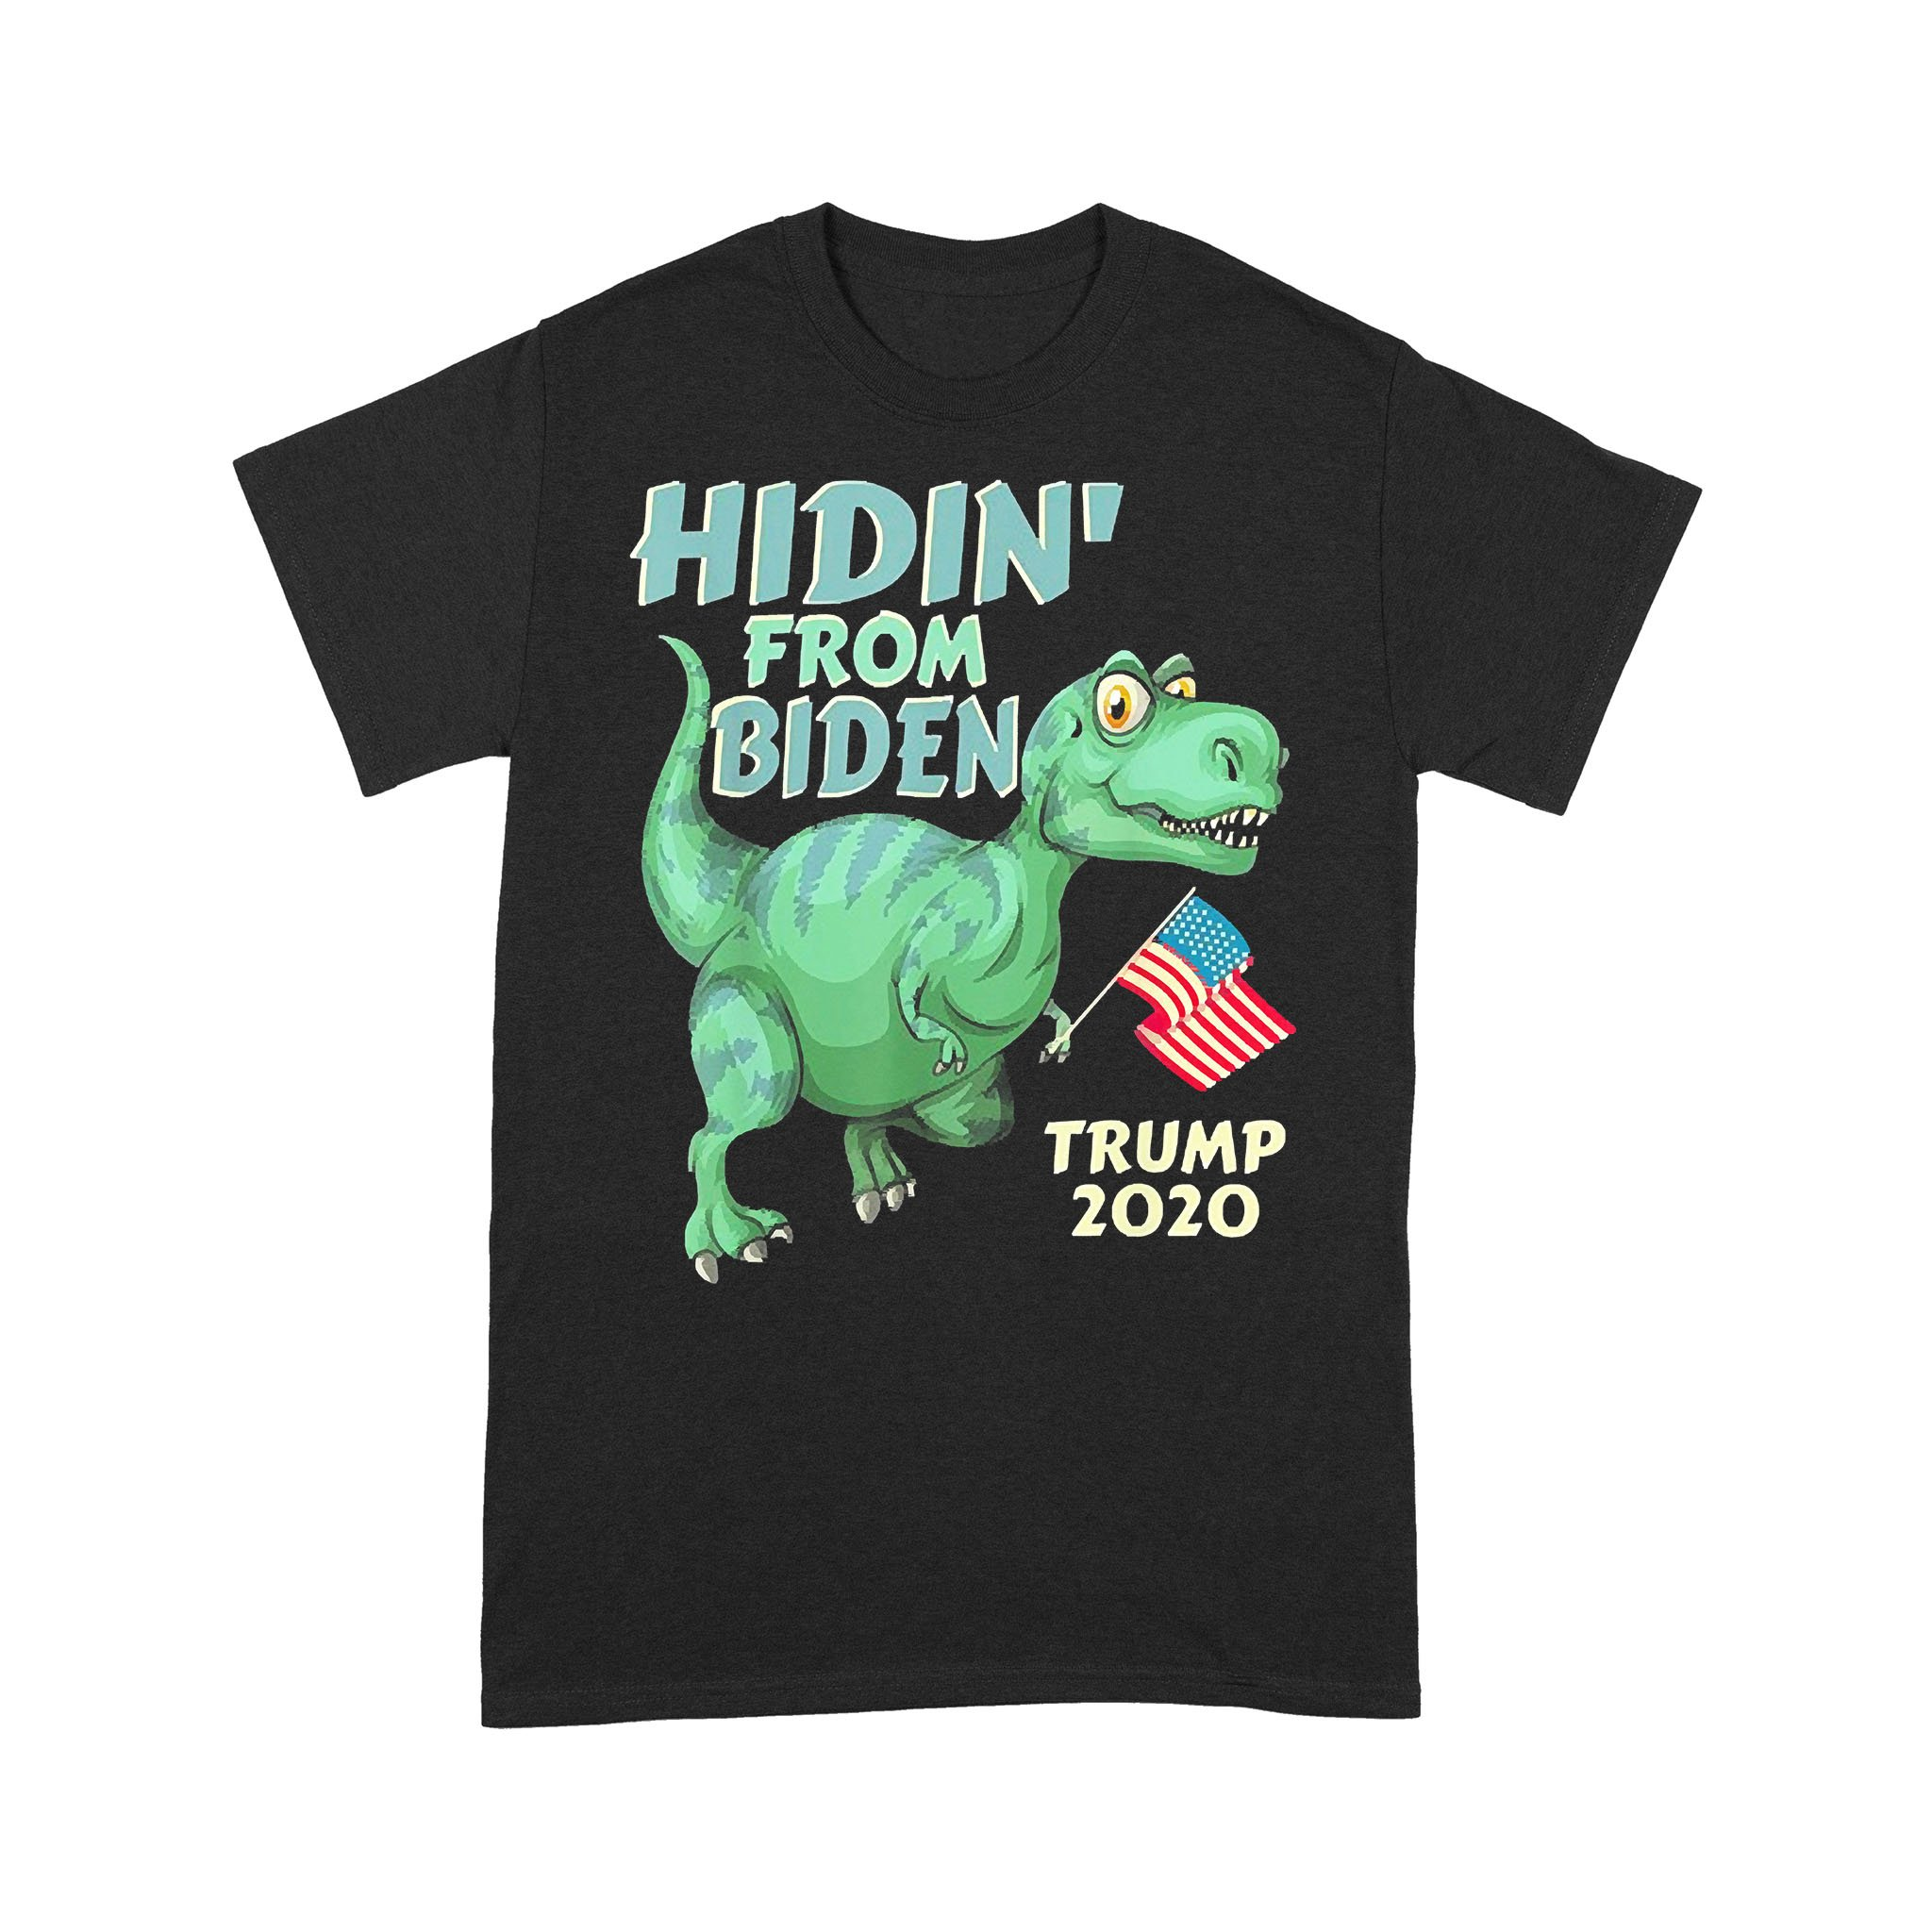 Hiding From Biden Usa Flag T Rex Trump 2020 T-shirt